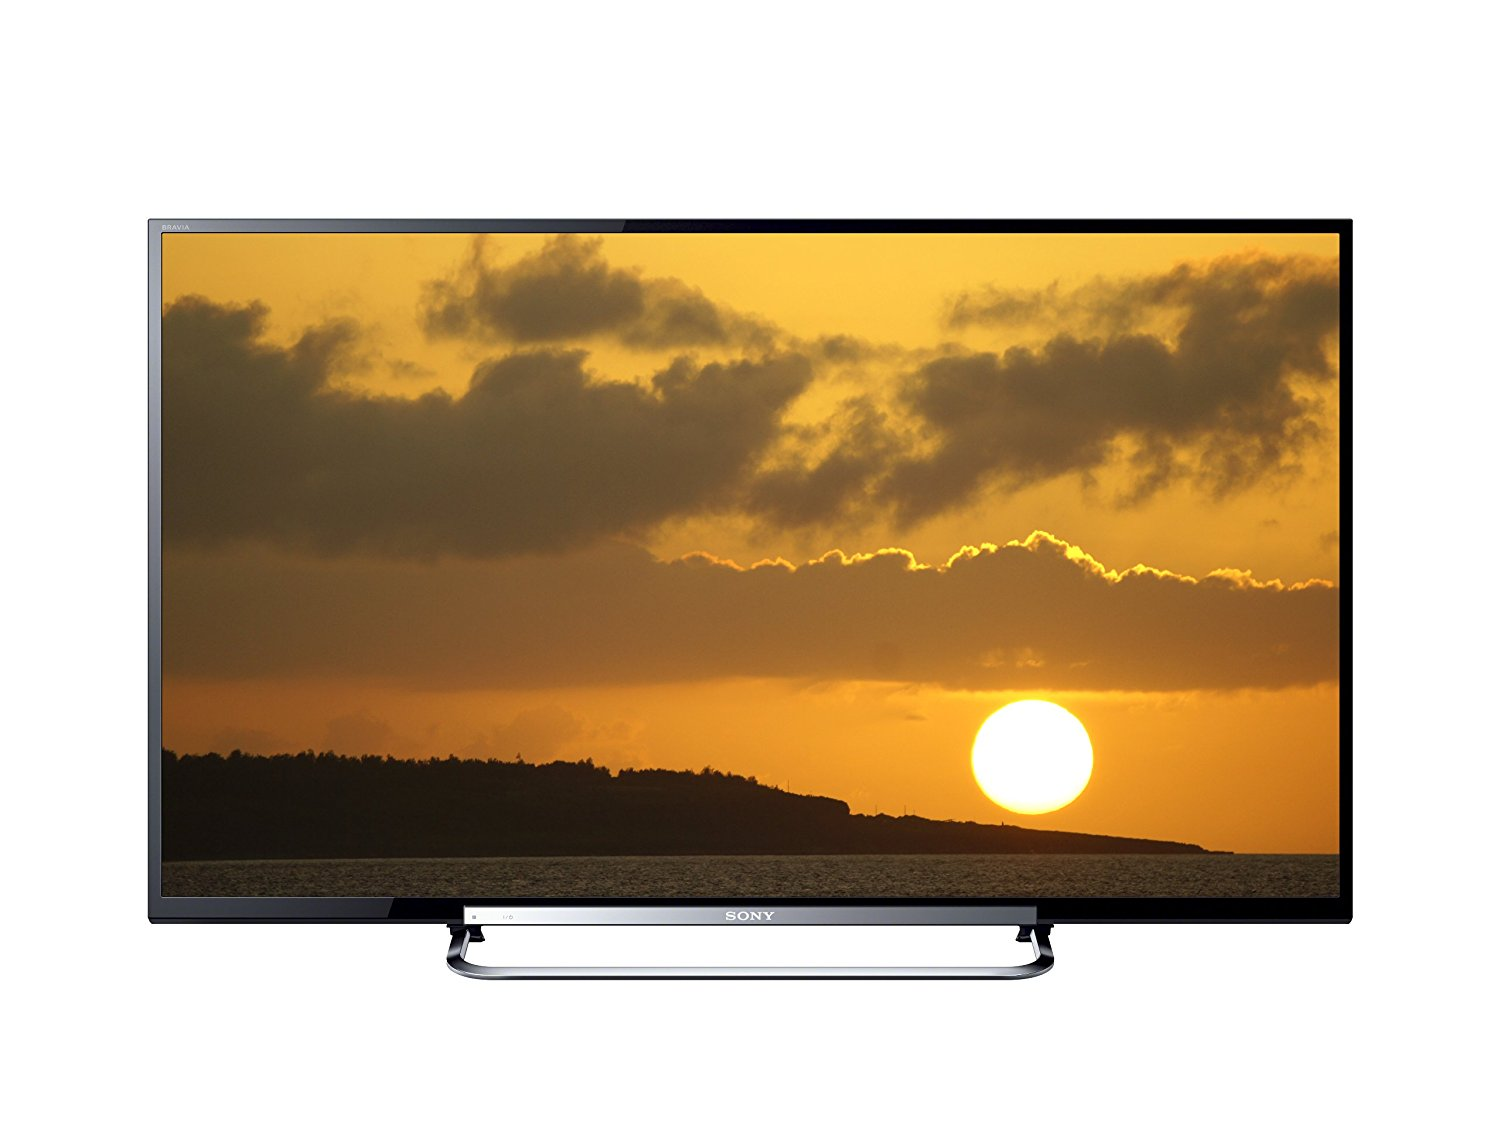 Sony KDL60R520A 60inch FHD LED LCD TV